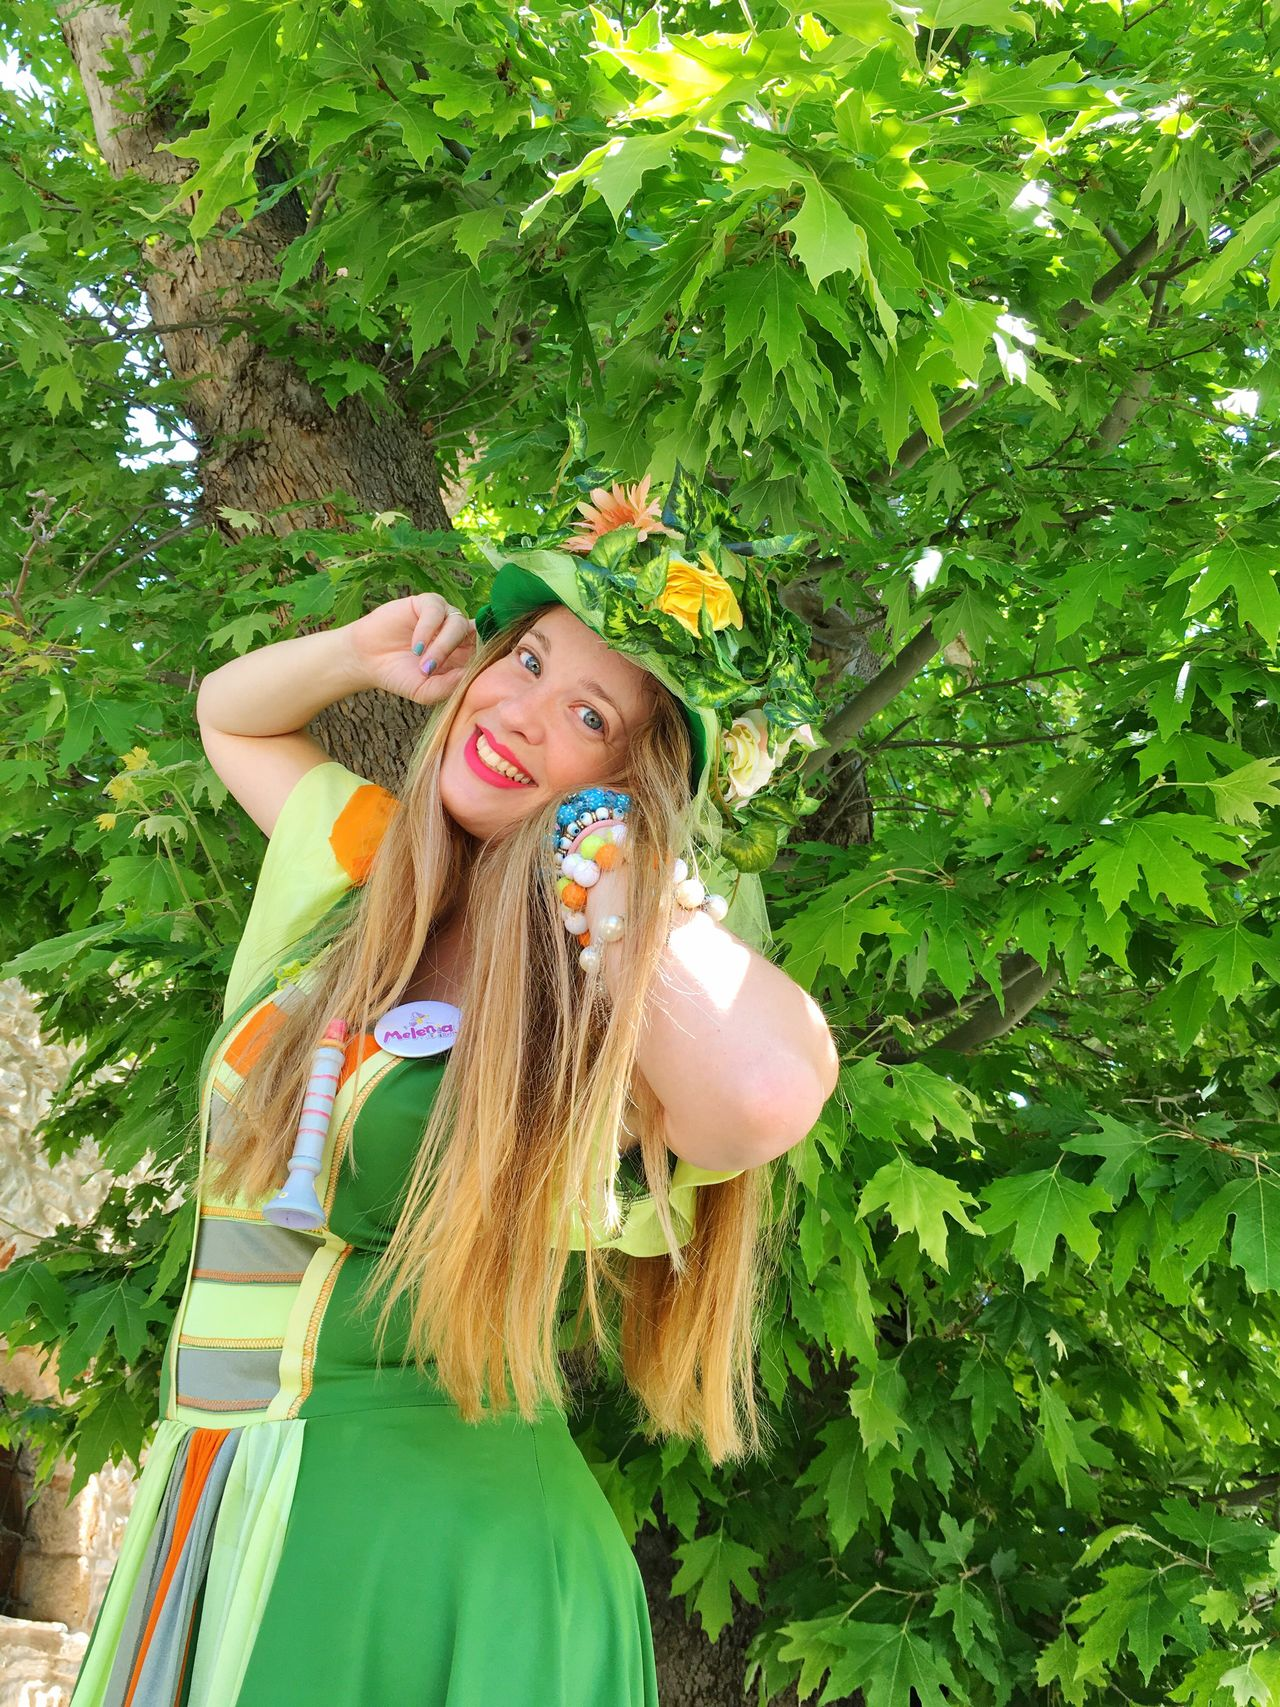 Long Hair Smiling One Person Elf Fantasy Fantasy Photography Green Color Tree Outdoors Happiness Day Beautiful Woman Enjoyment Casual Clothing Lifestyles Cheerful Women Portrait Nature Neraidamelenia Meleniapantou Meleniaclowndoctor Ksotiko Forest Photography Forest